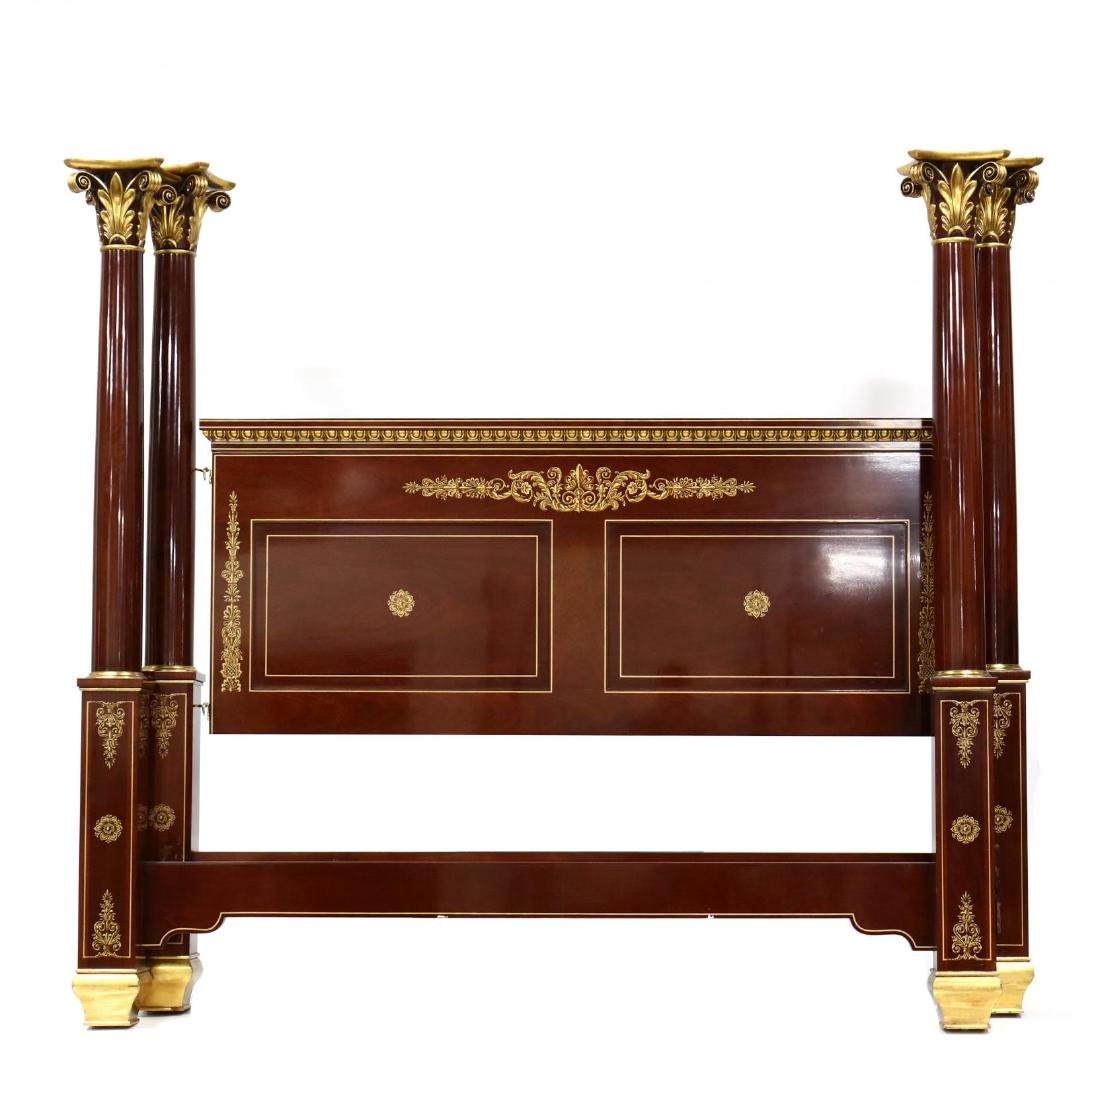 Kindel Masterworks, Winterthur Adaptation Mahogany Gilt